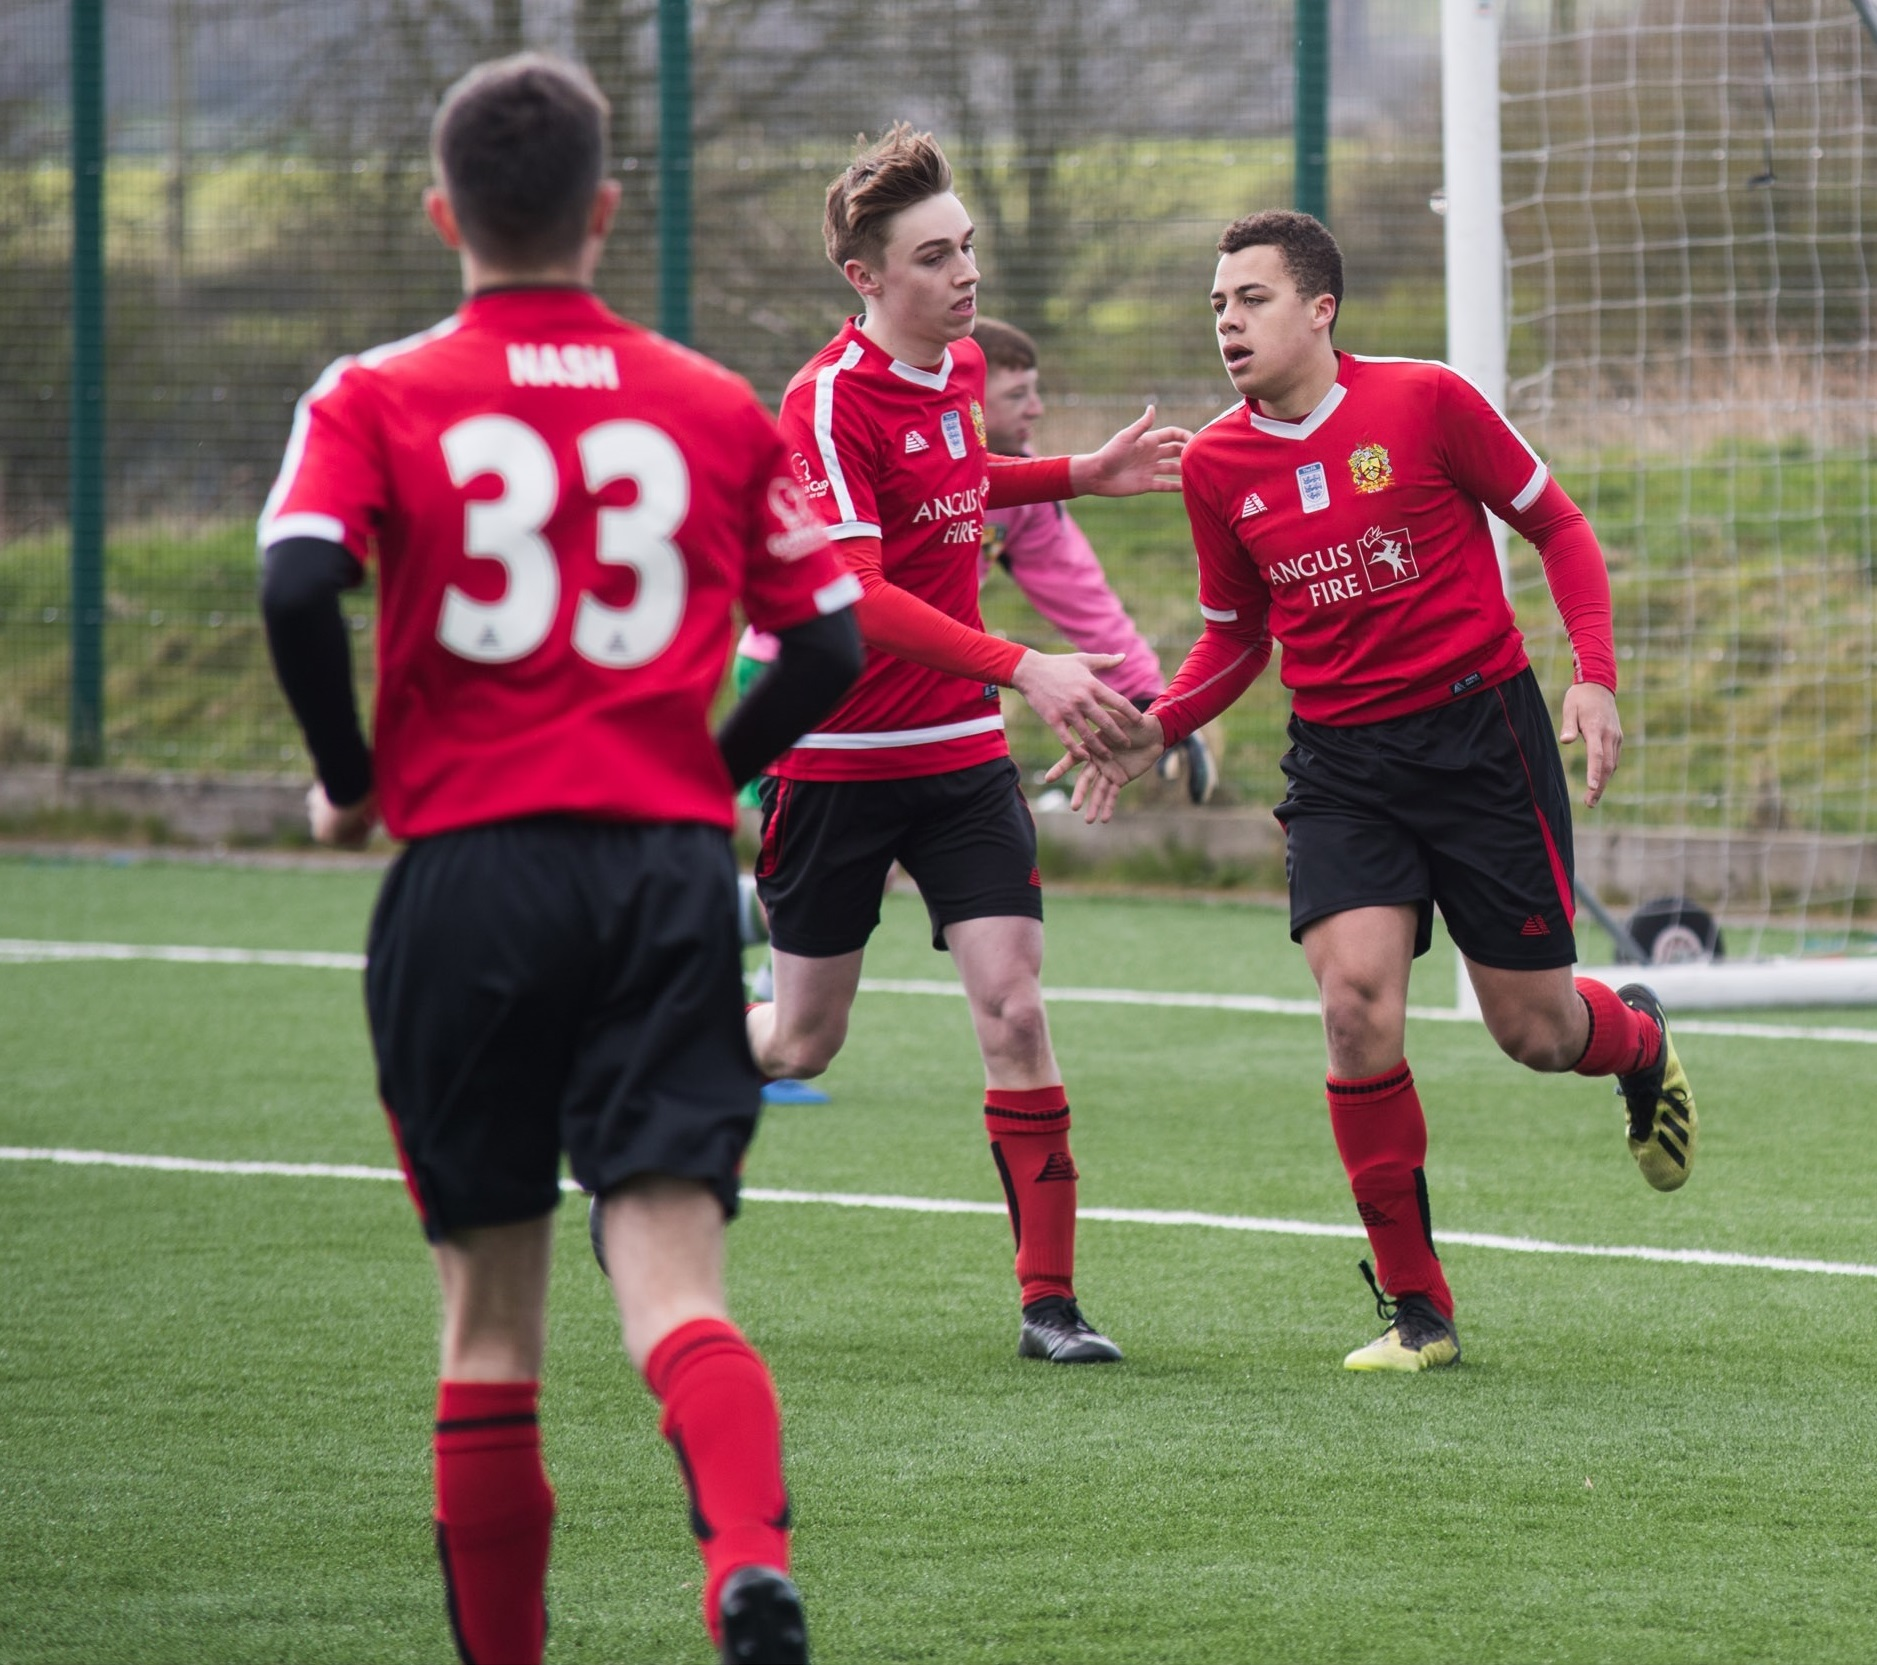 Silsden Feyenoord booked their semi-final place